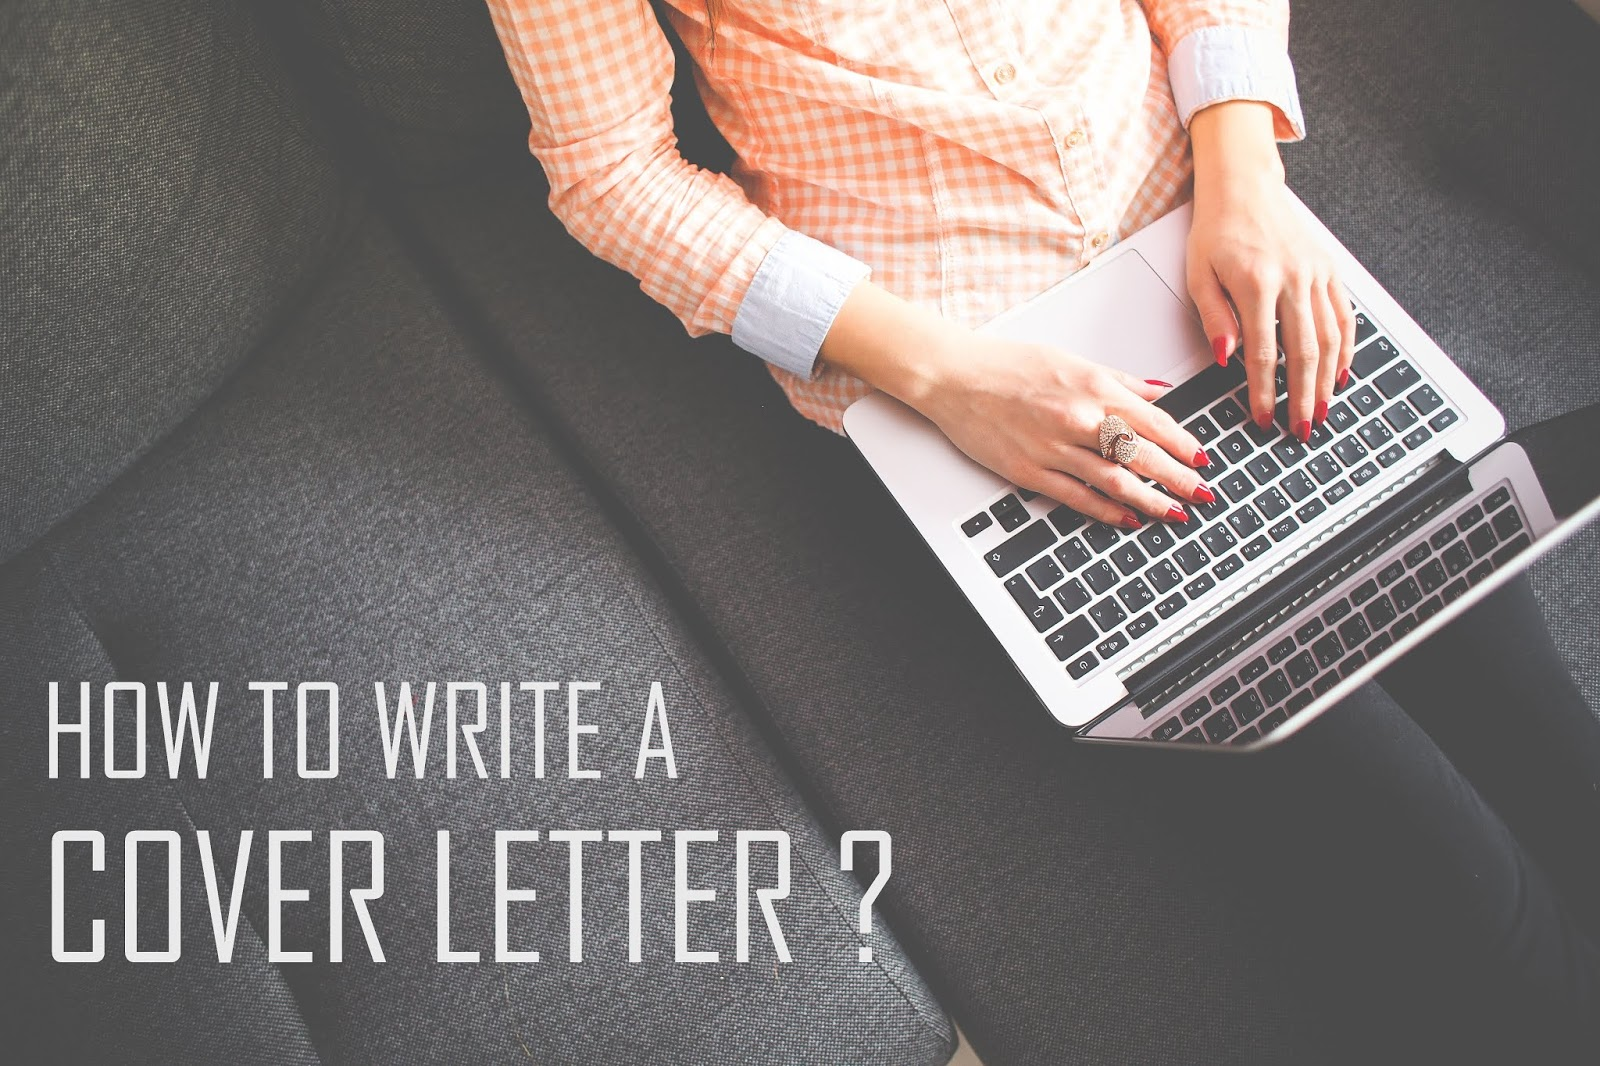 HOW TO WRITE A COVER LETTER IN 2019 (TIPS AND TRICKS)